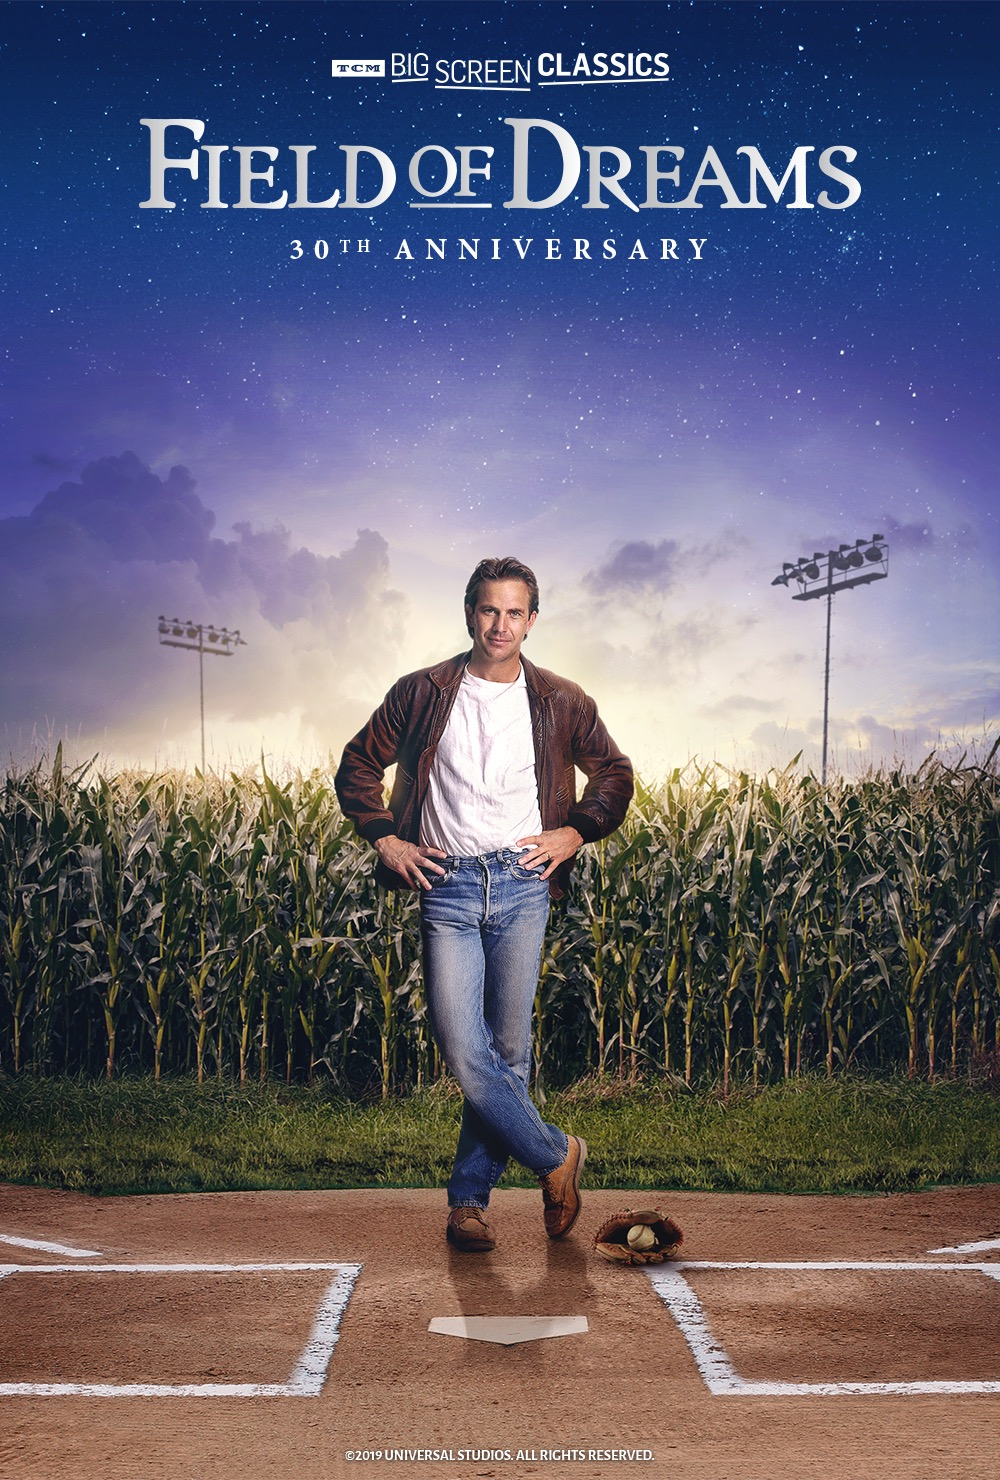 field-of-dreams-poser-b8c61bf32e9cb6a1b266dc72792044ab.jpg